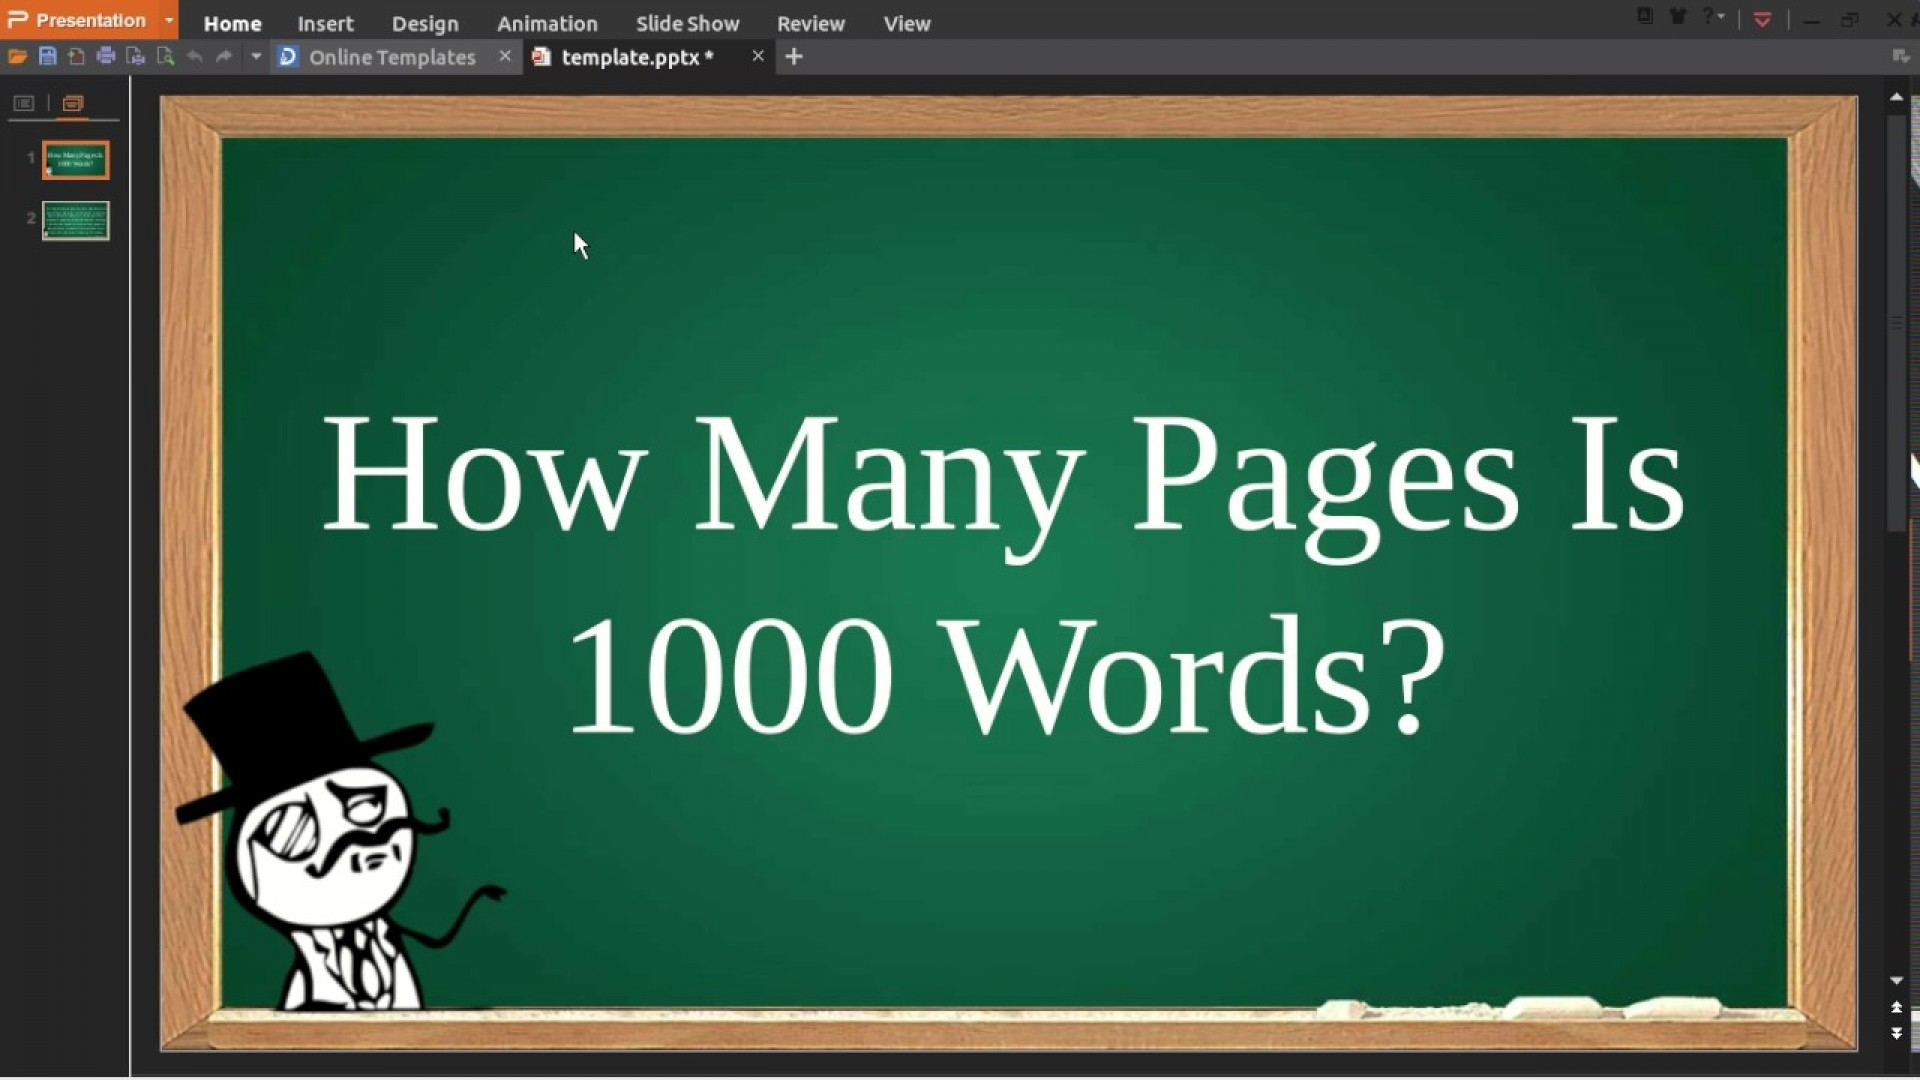 002 Maxresdefault Essay Example Word Dreaded 1000 Pages 1920